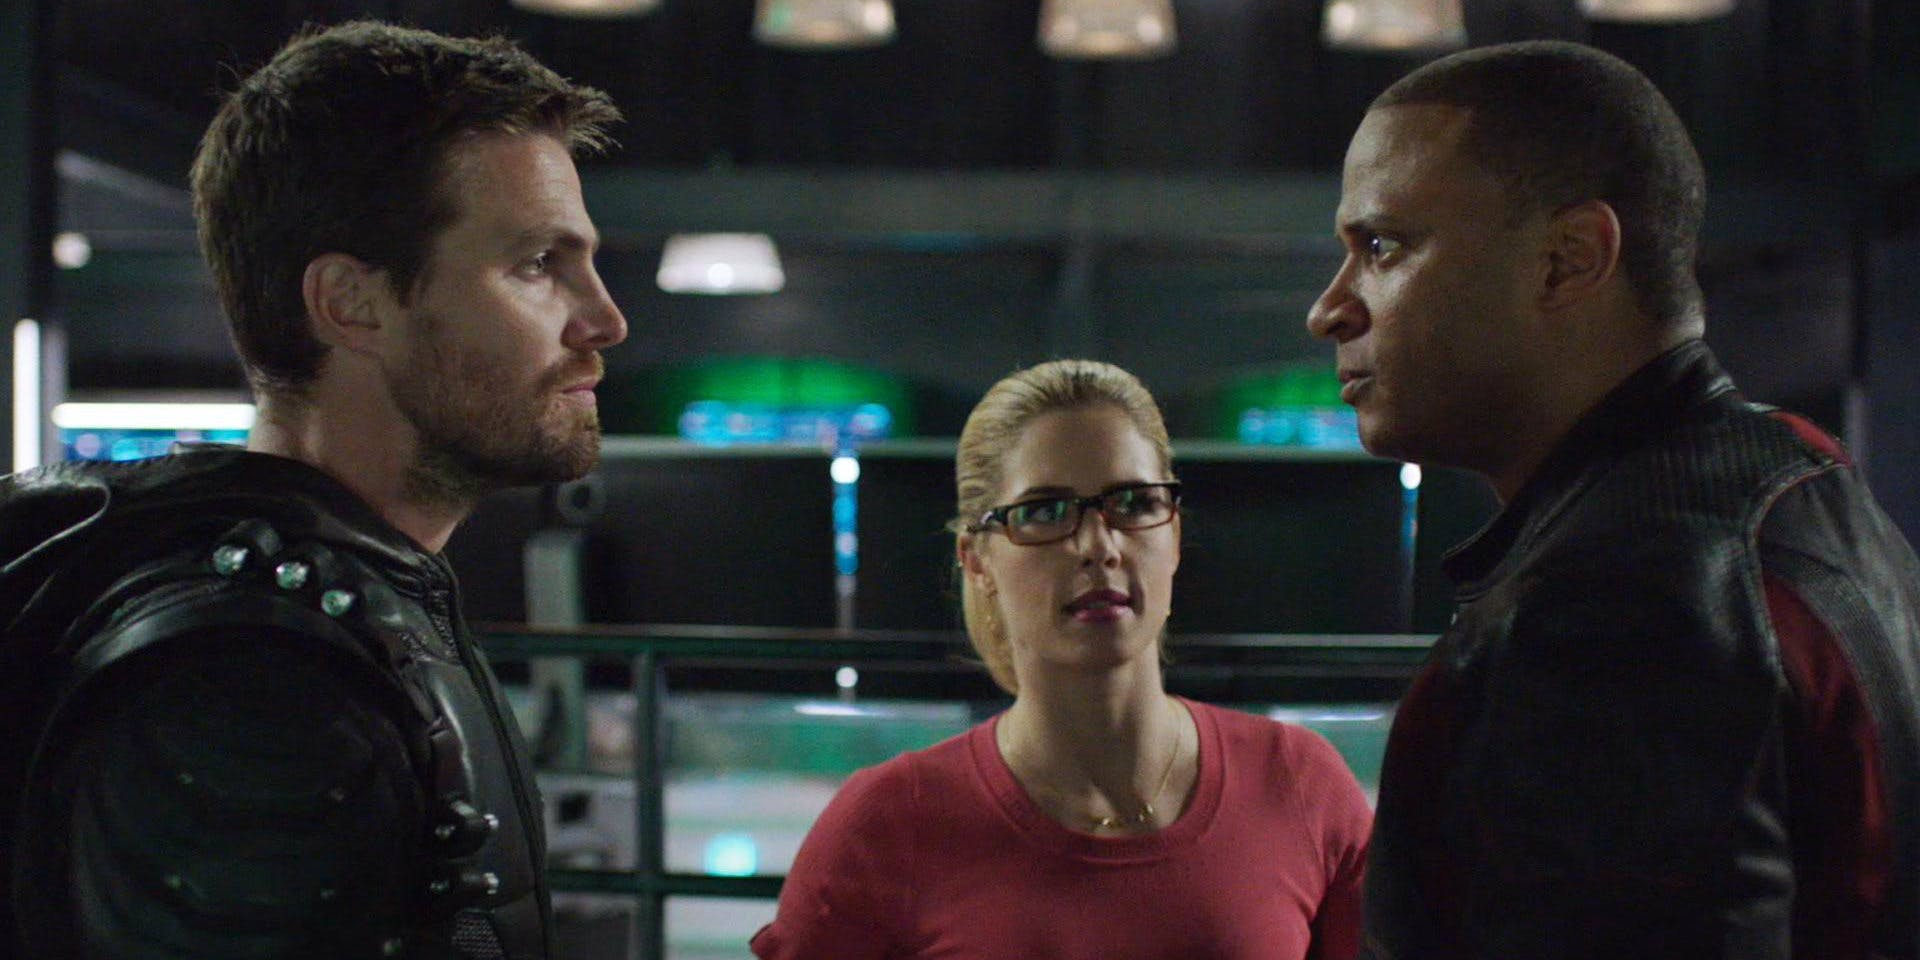 Arrow: Brothers in Arms | Season 6 | Episode 17